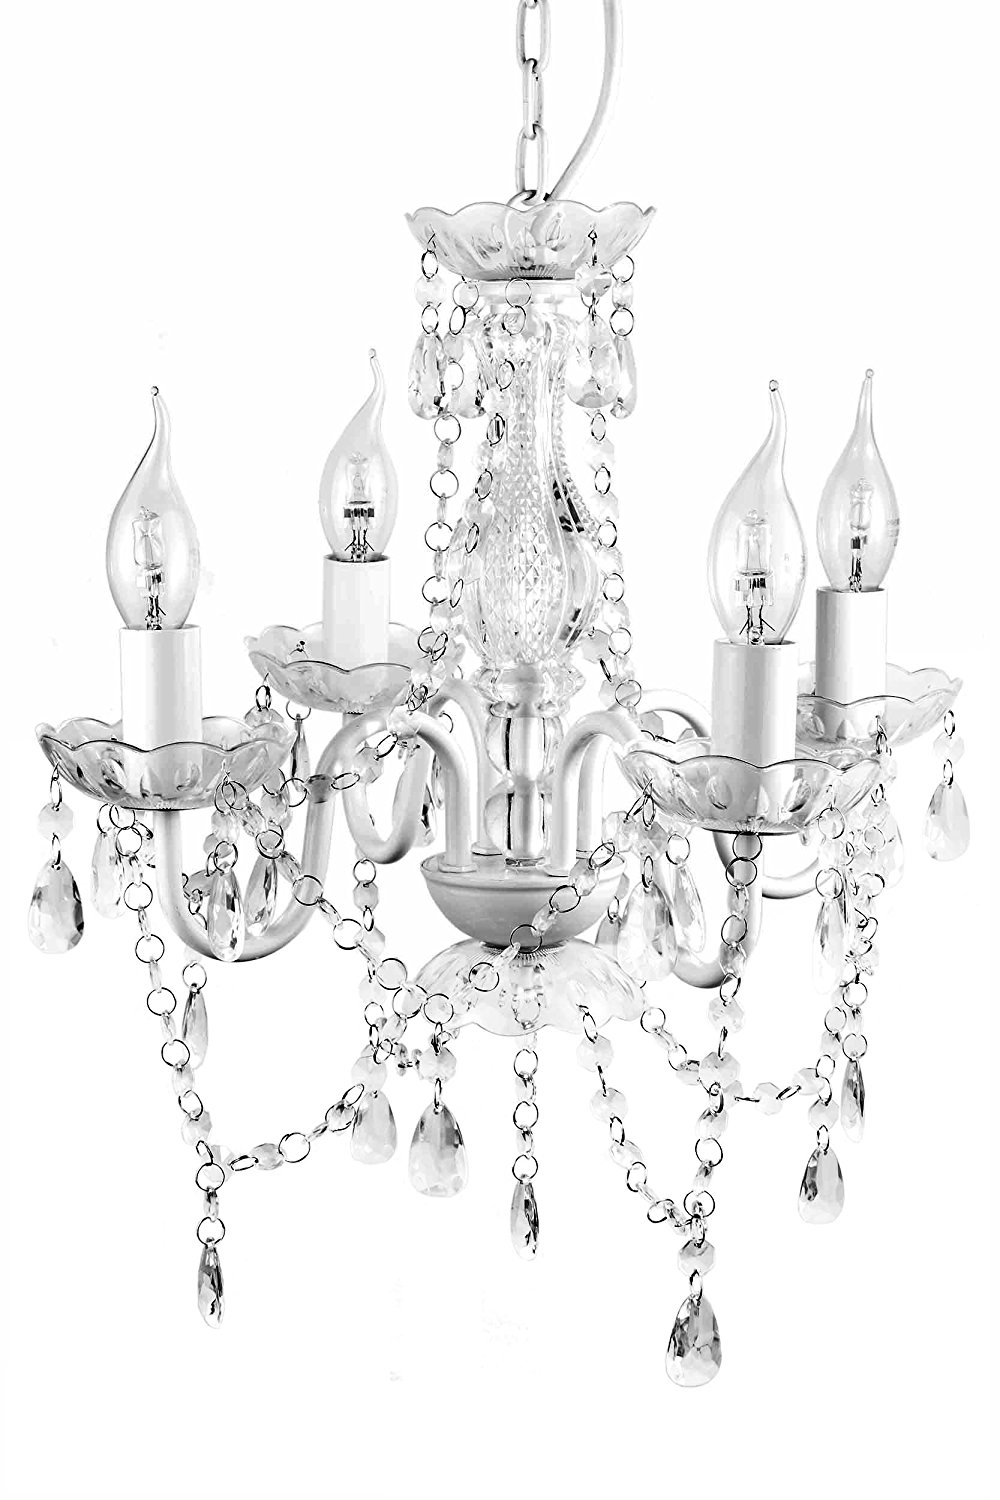 A2s Gypsy Crystal Chandelier Small Black 4 Arm H18 W15 In Small Gypsy Chandeliers (Image 3 of 25)